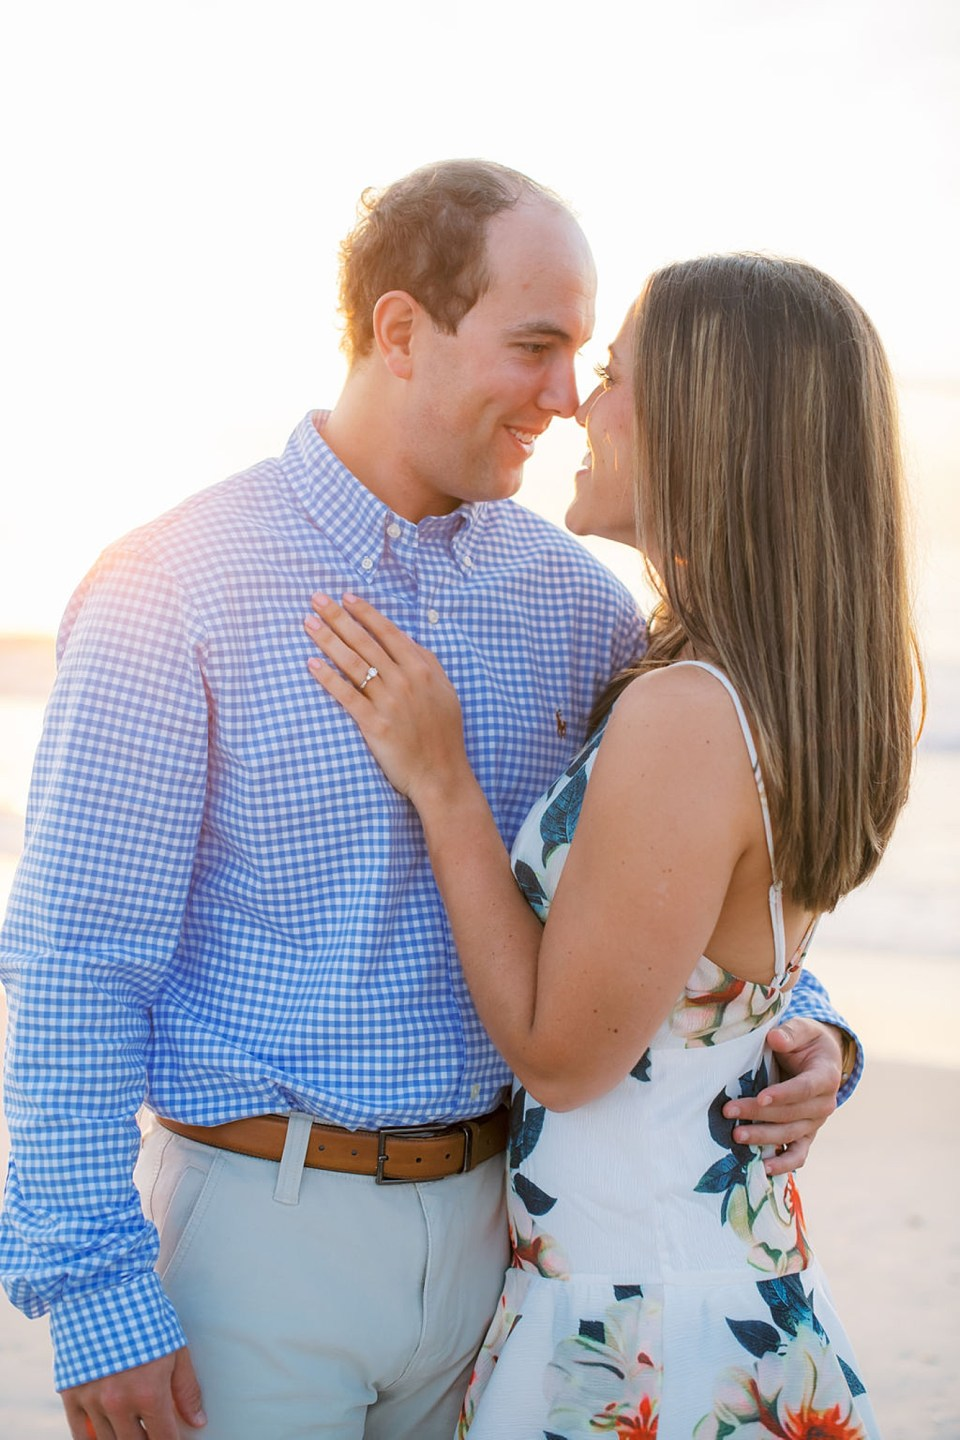 Organic and Romantic Engagement Photography in Ocean City NJ by Magdalena Studios 0012